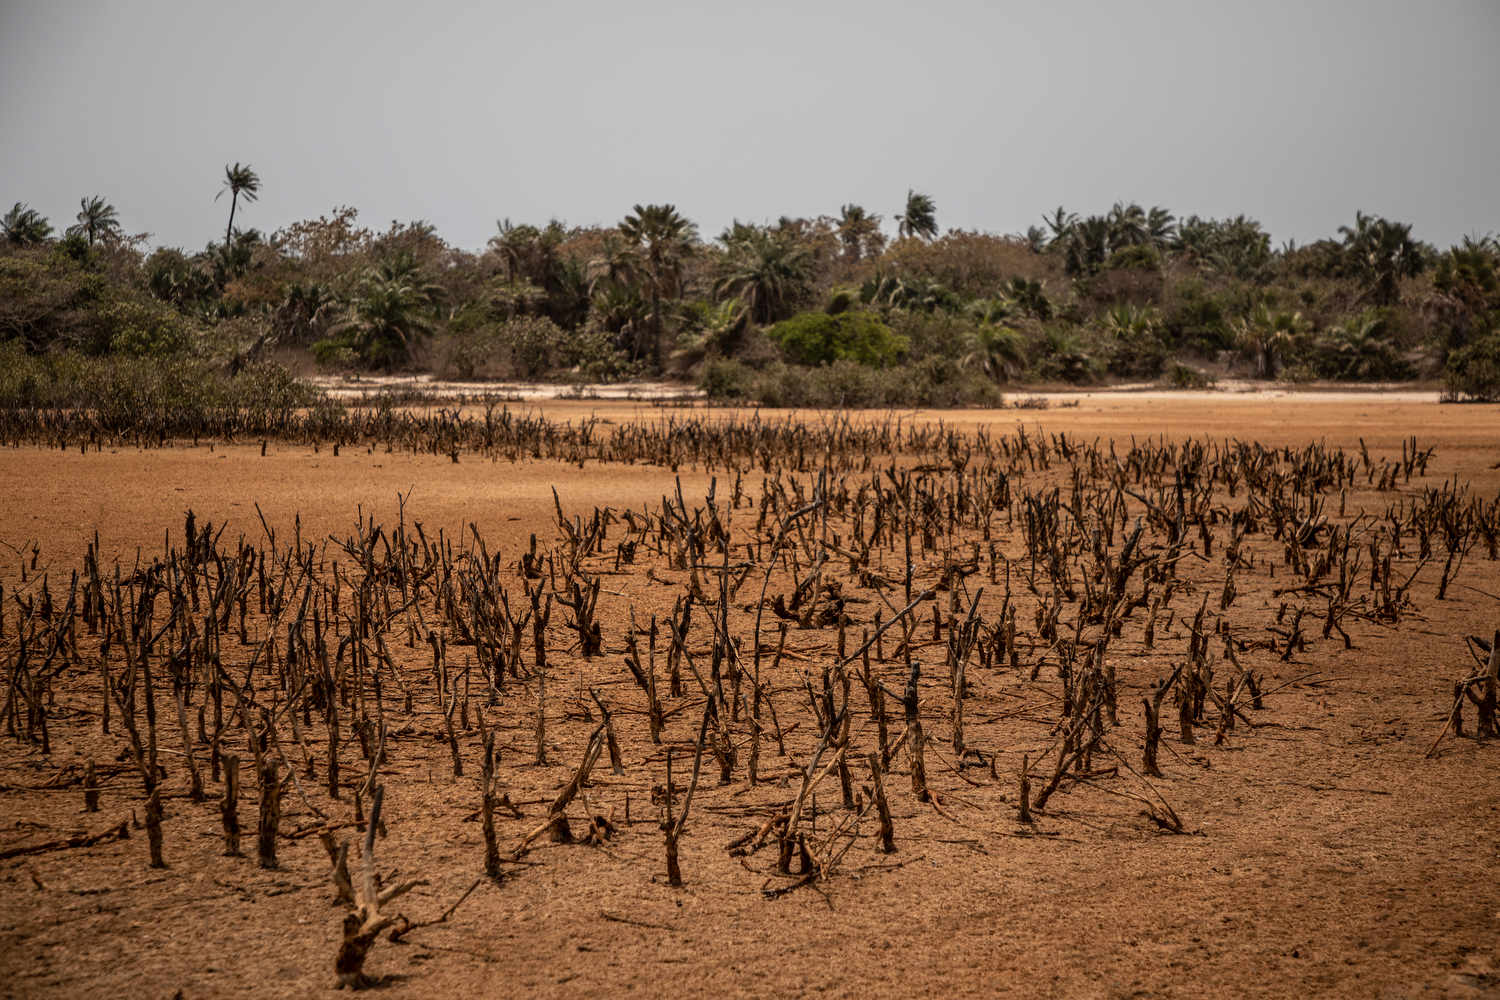 Soluble iron deposits discolour the surface of the ground in a mangrove forest near the village of Tanji in The Gambia's west coast region.